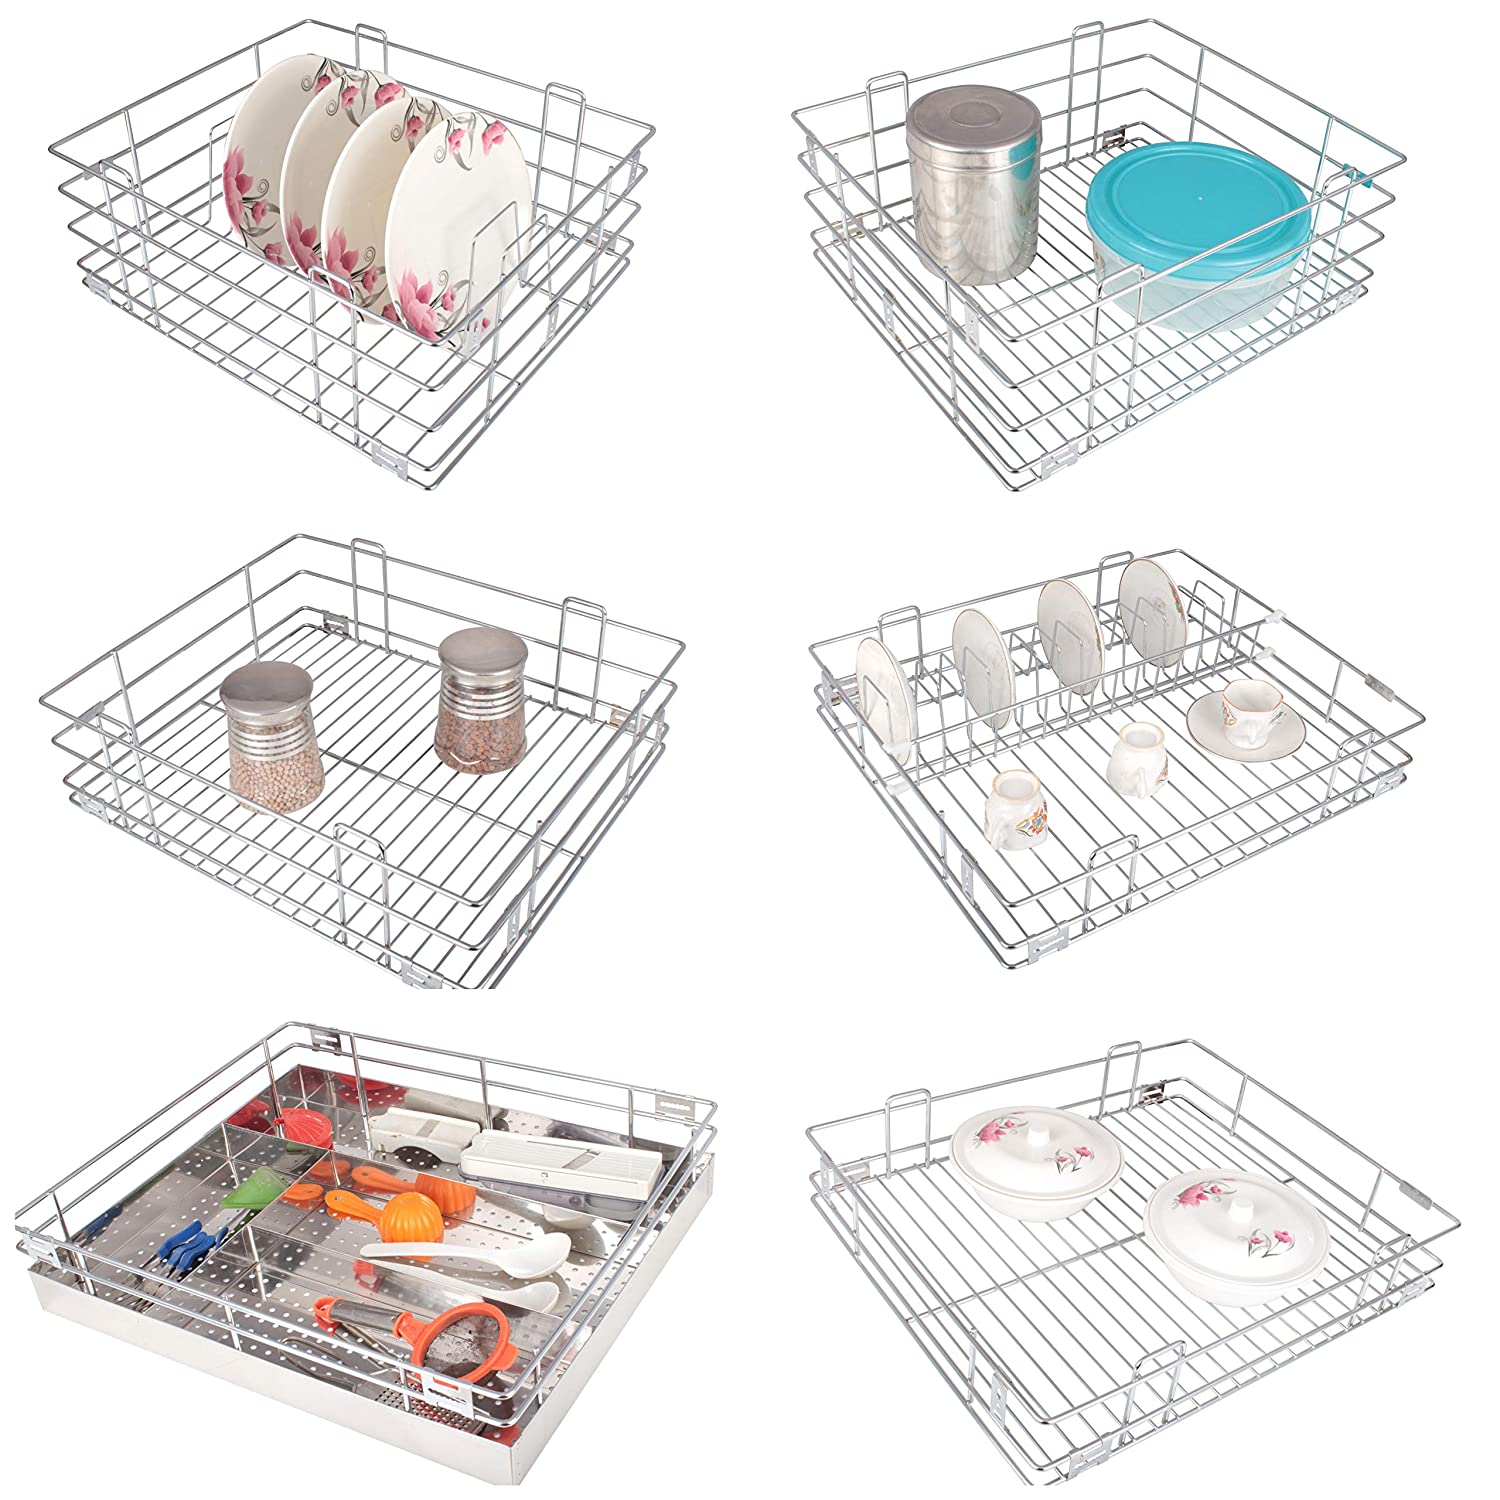 Kyc Stainless Steel Modular Kitchen Cabinet Storage Drawer Basket And Accessories Set Of 6 15x16 Inch Amazon In Home Improvement